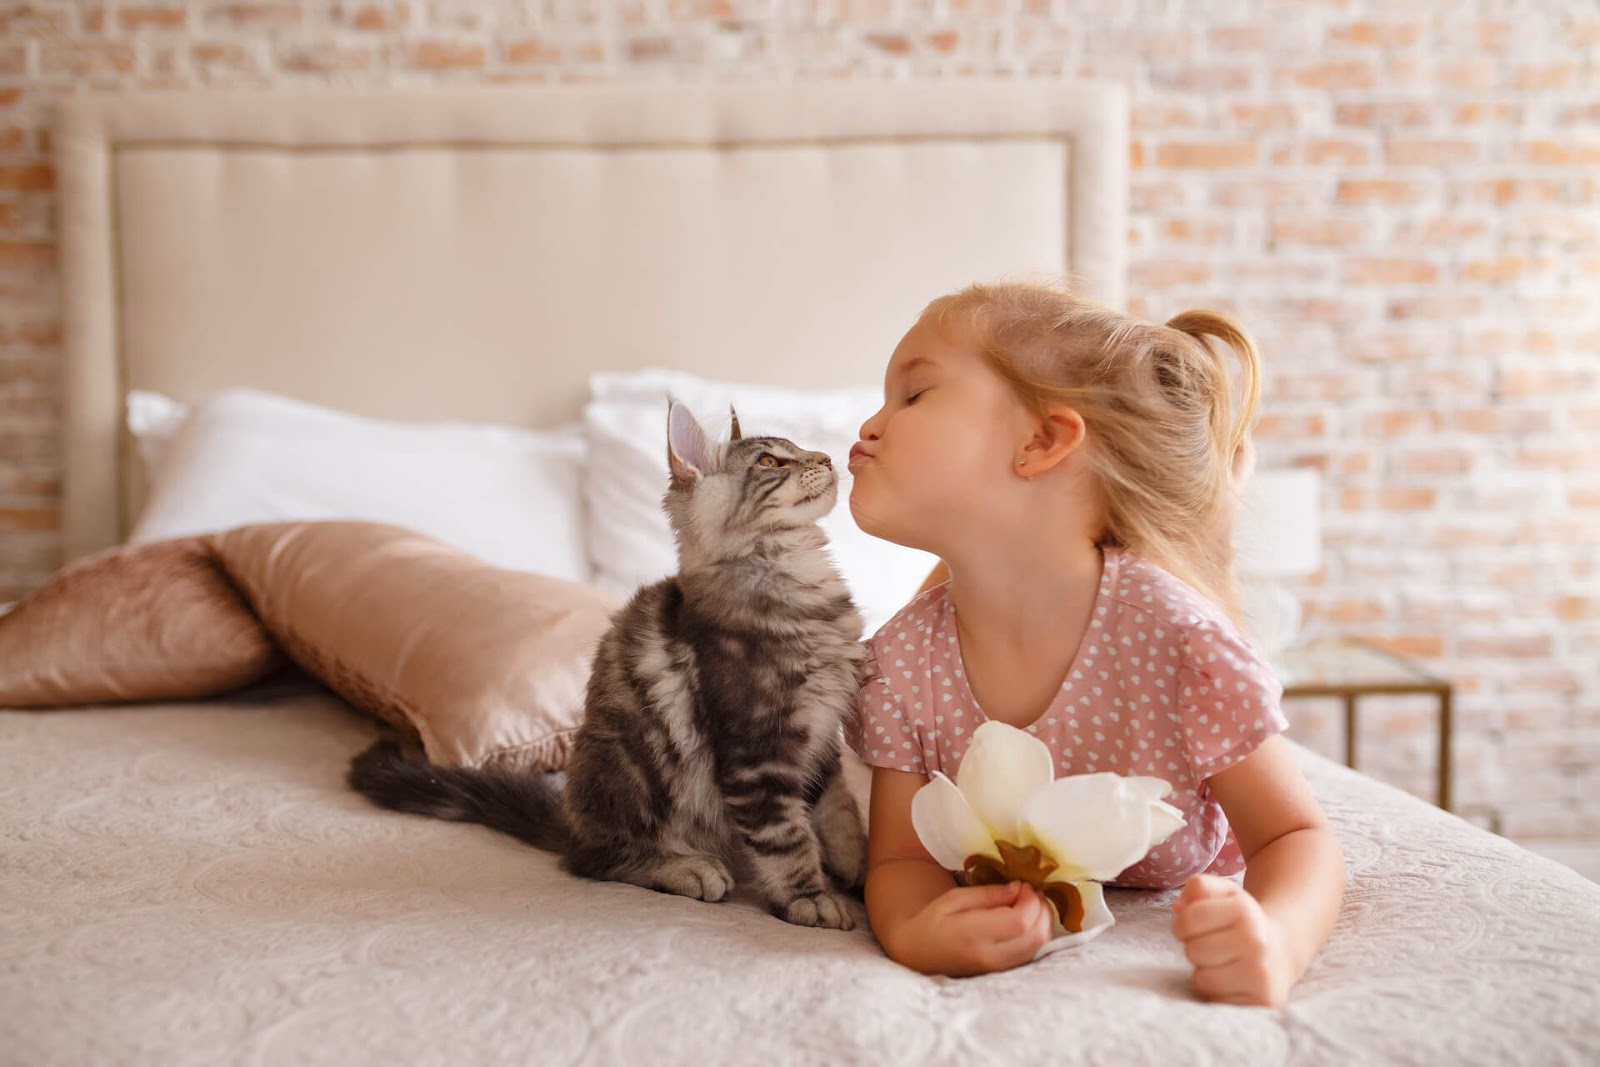 Young girl giving kisses to her kitten on her parent's bed